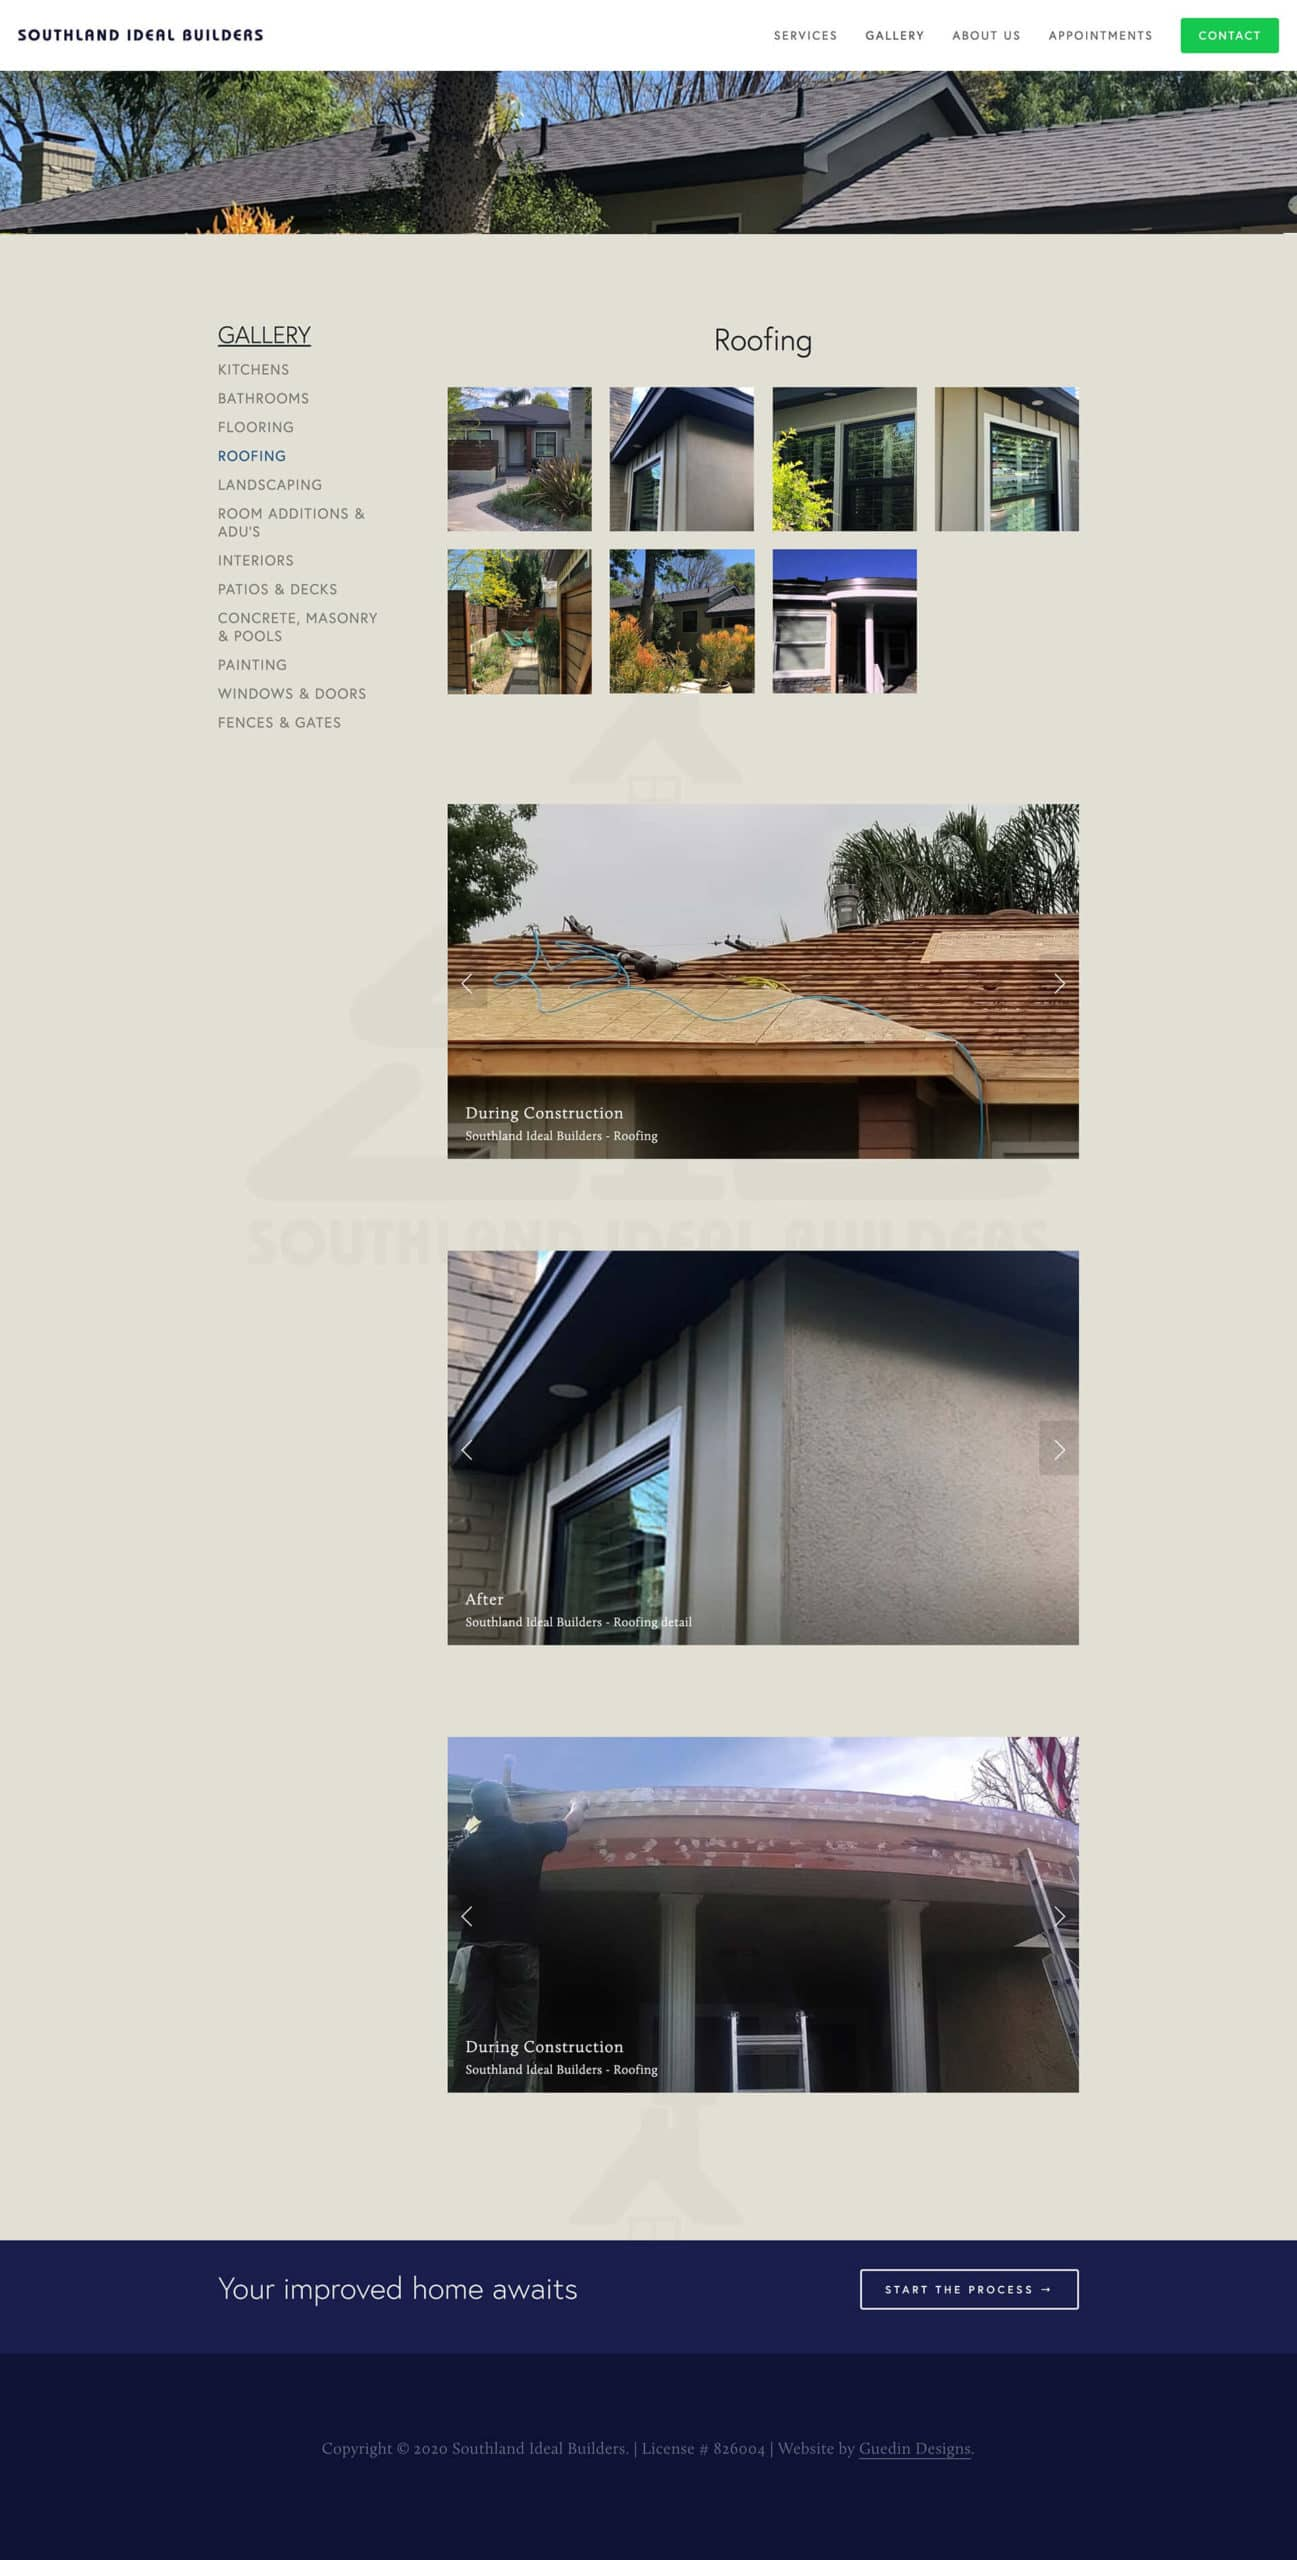 Snapshot of Southland Ideal Builders roofing gallery